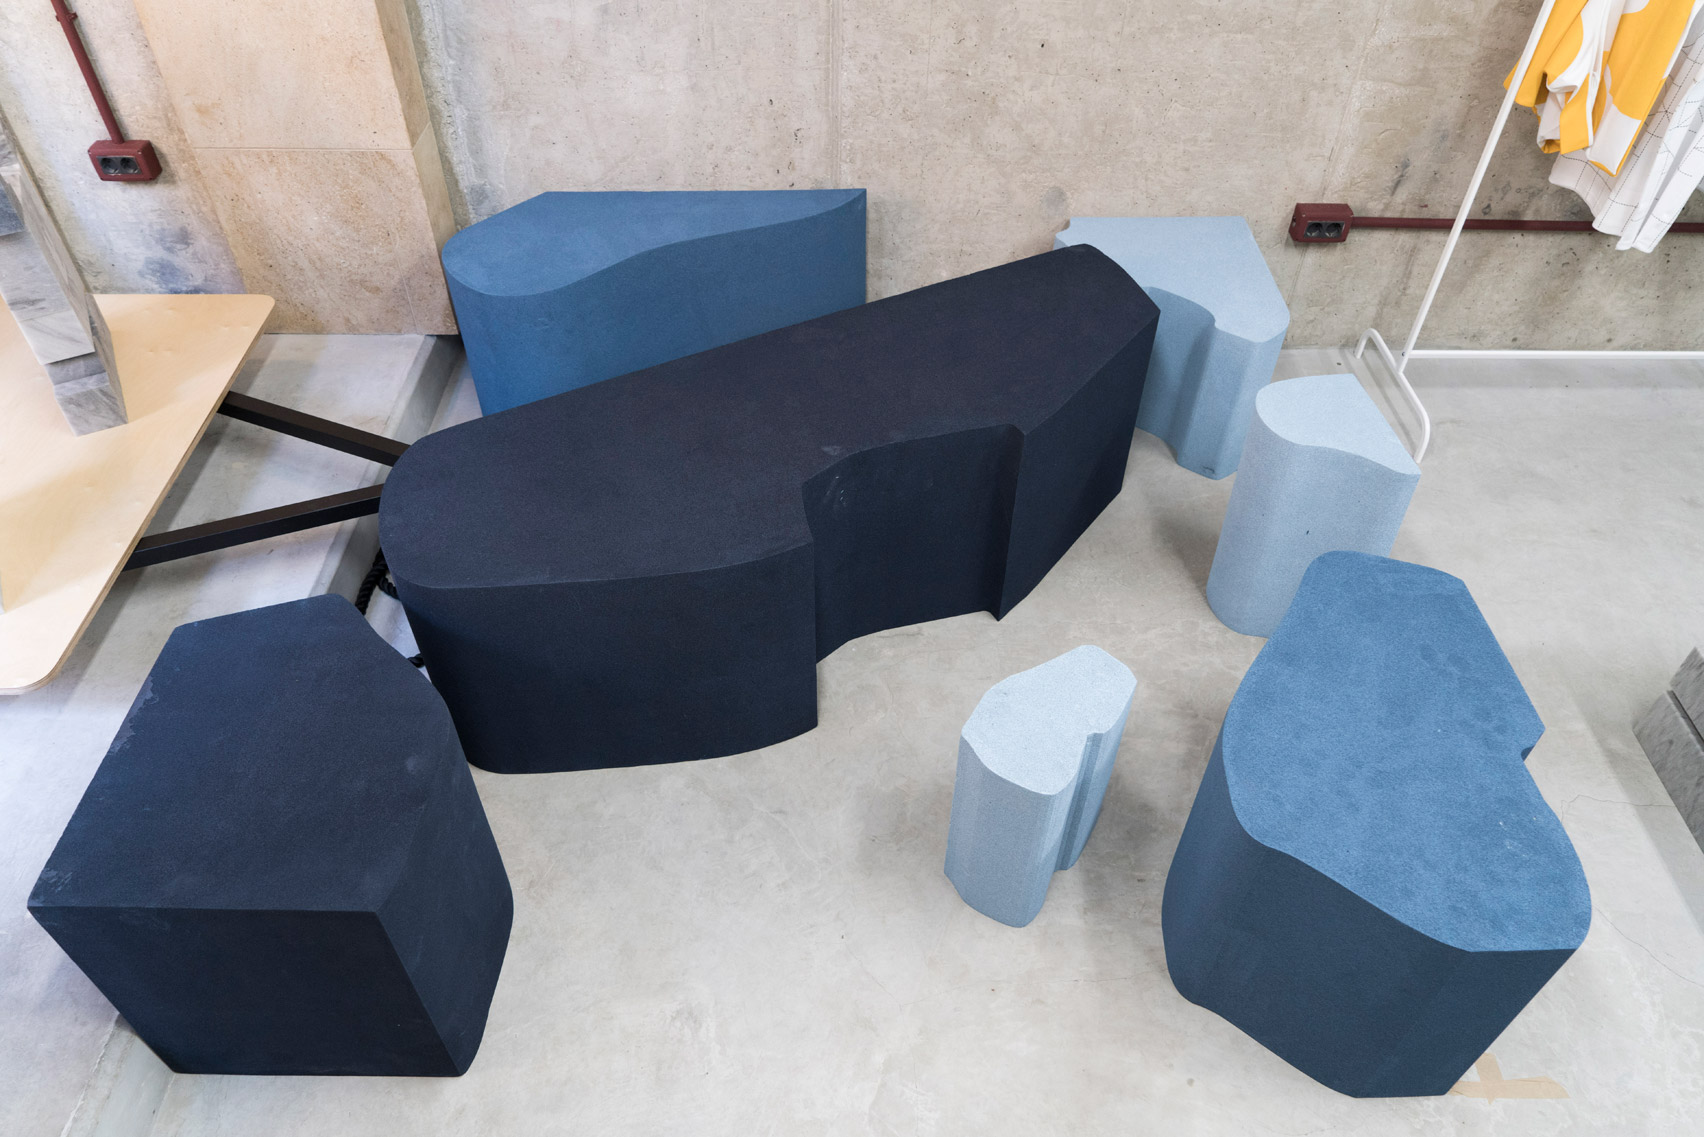 Different Types Of Foam Geometric Foam Blocks Mimic Marble And Terrazzo At Beirut Design Week